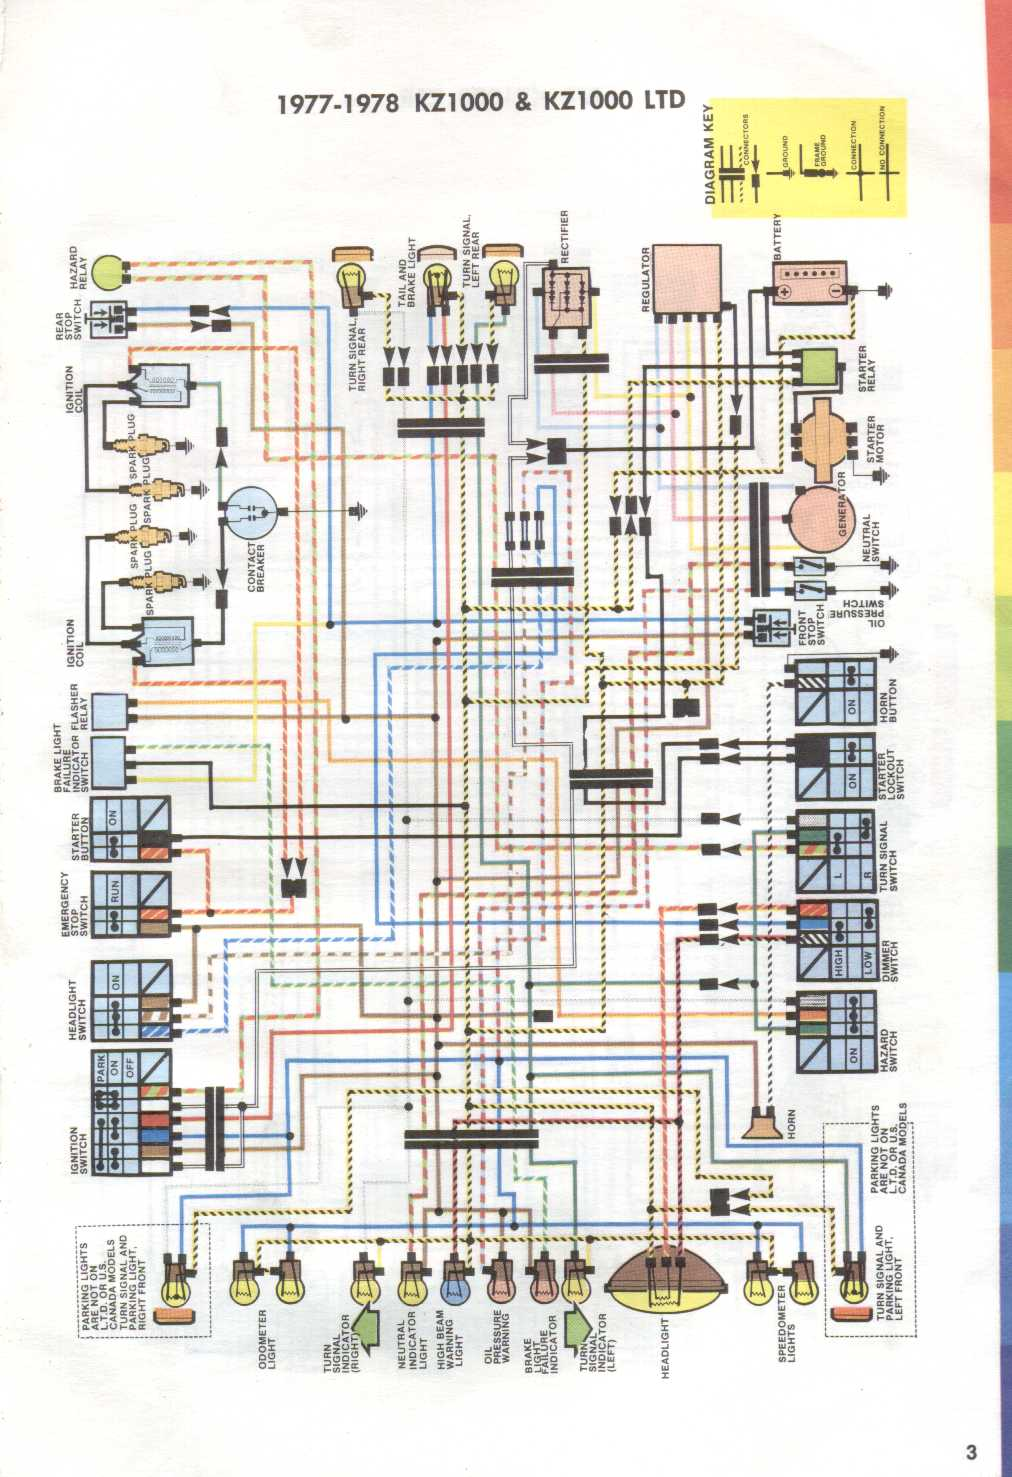 Kz900 Wiring Diagram - Wiring Diagram Mega on xv920 wiring diagram, er6n wiring diagram, kz400 wiring diagram, fj1100 wiring diagram, vulcan 750 wiring diagram, z1000 wiring diagram, kawasaki wiring diagram, kz1000 wiring diagram, kz900 wiring diagram, kz650 wiring diagram, ke175 wiring diagram, zx600 wiring diagram, gs1000 wiring diagram, vulcan 1500 wiring diagram, zl1000 wiring diagram, ninja 250r wiring diagram, xj550 wiring diagram, kz200 wiring diagram, ex250 wiring diagram, xs850 wiring diagram,